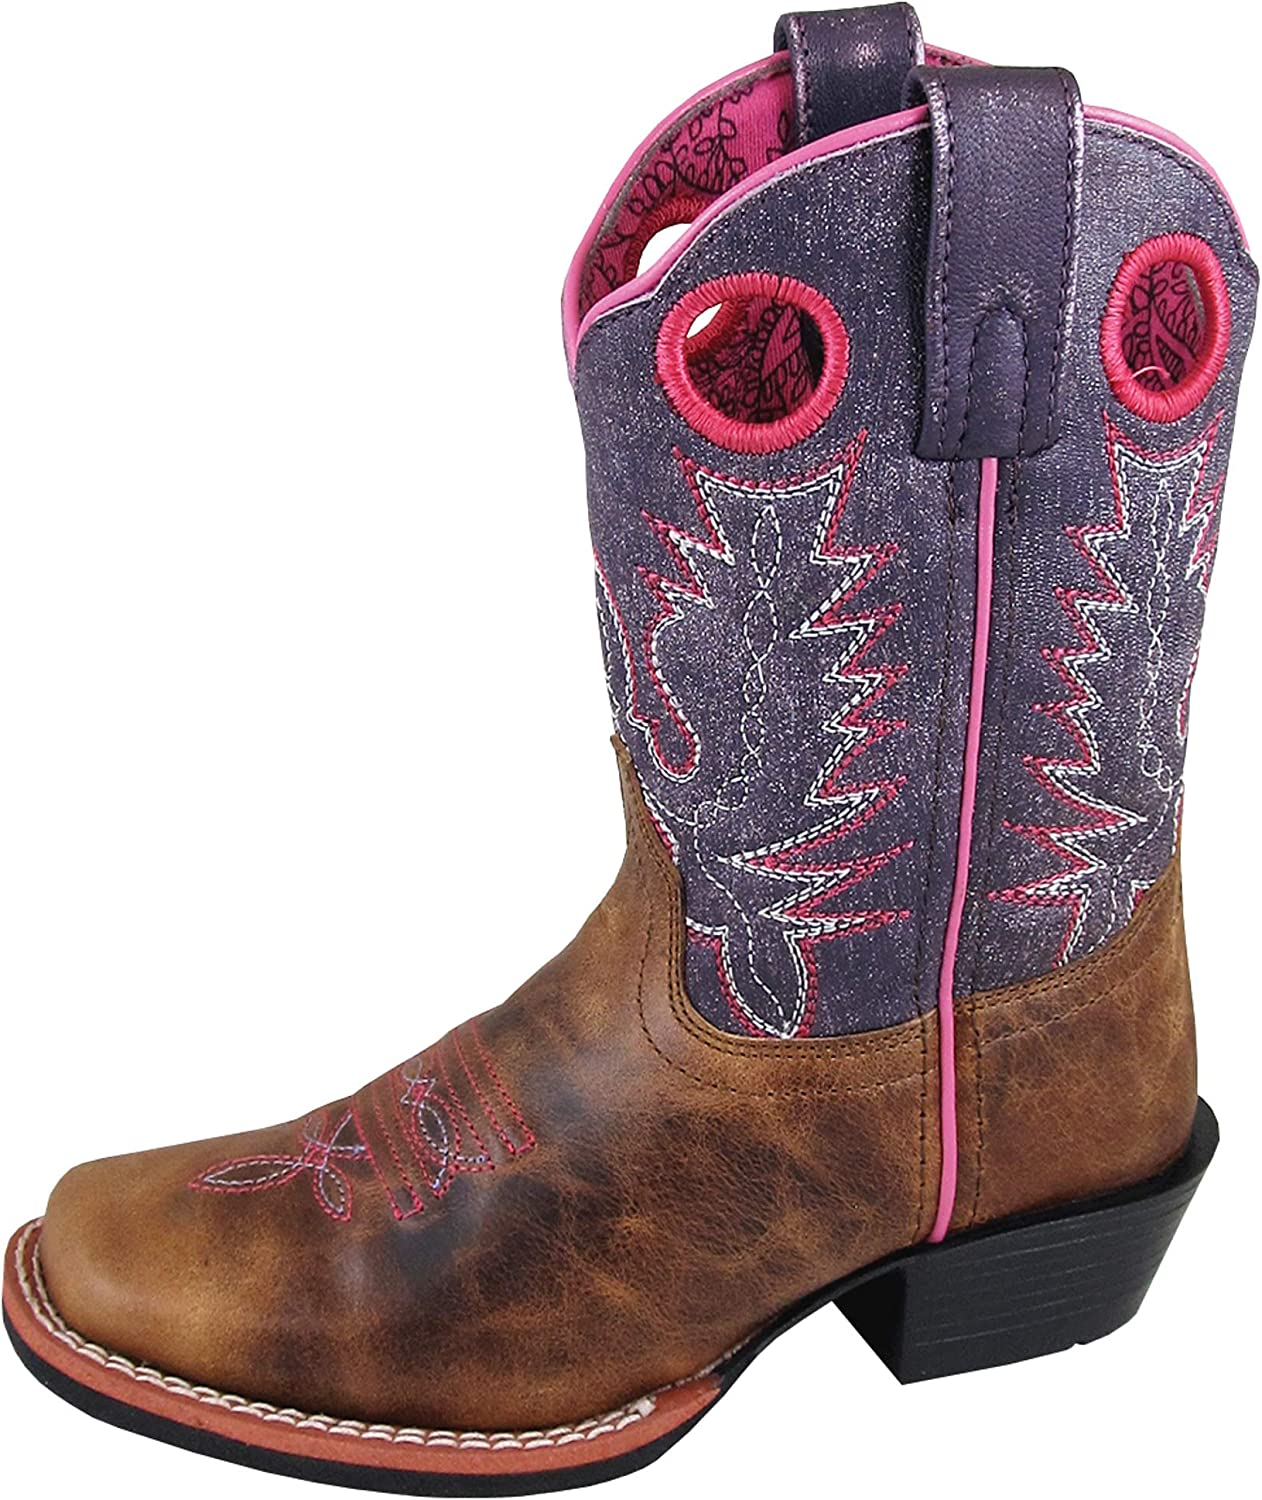 Smoky Mountain Girls' Ellie Western Boot Square Toe